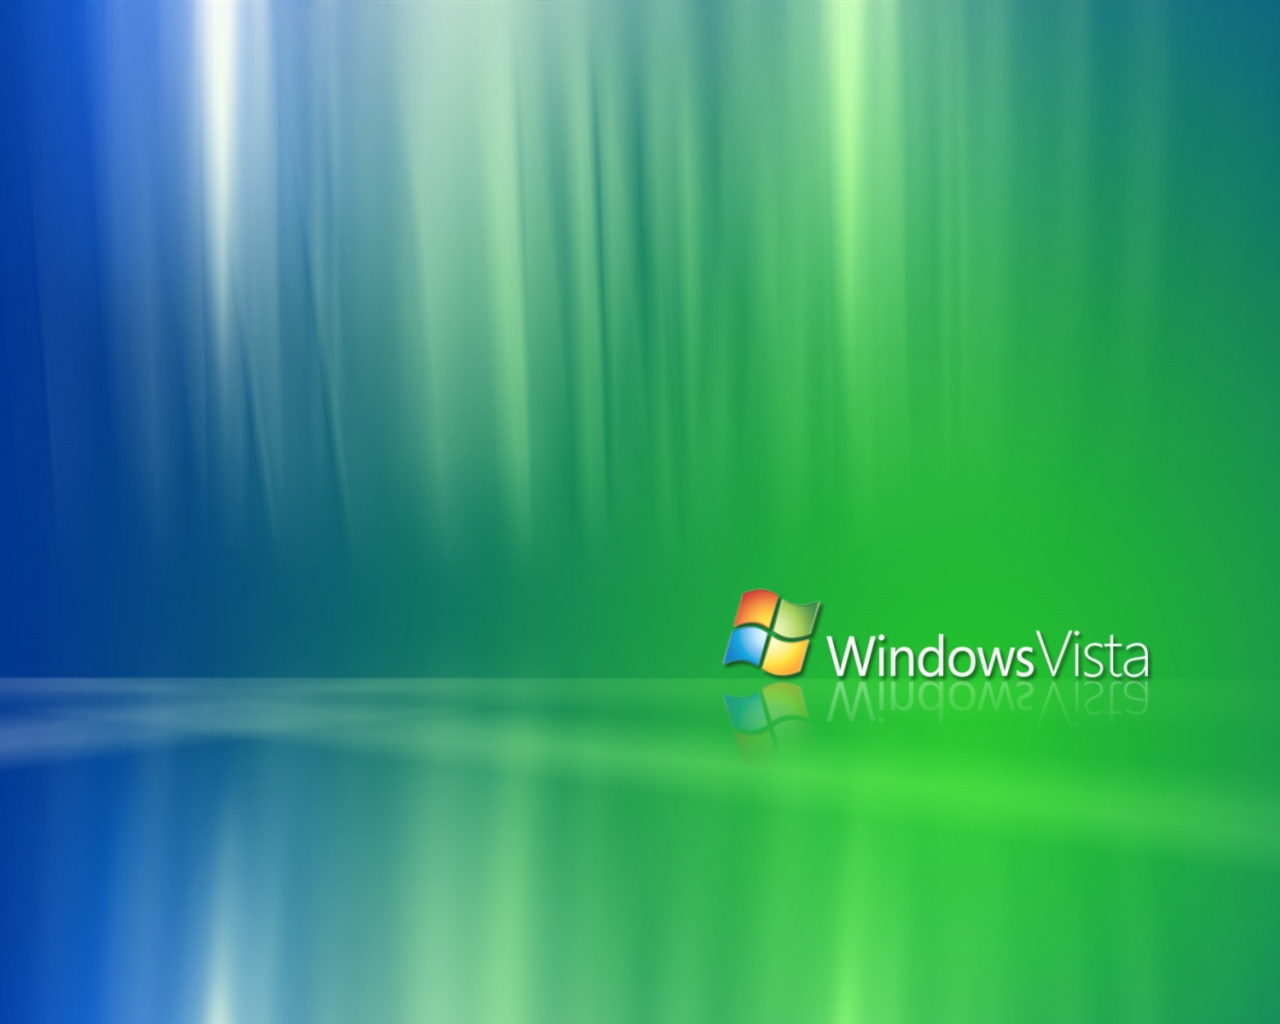 windows vista wallpapers | windows vista stock photos